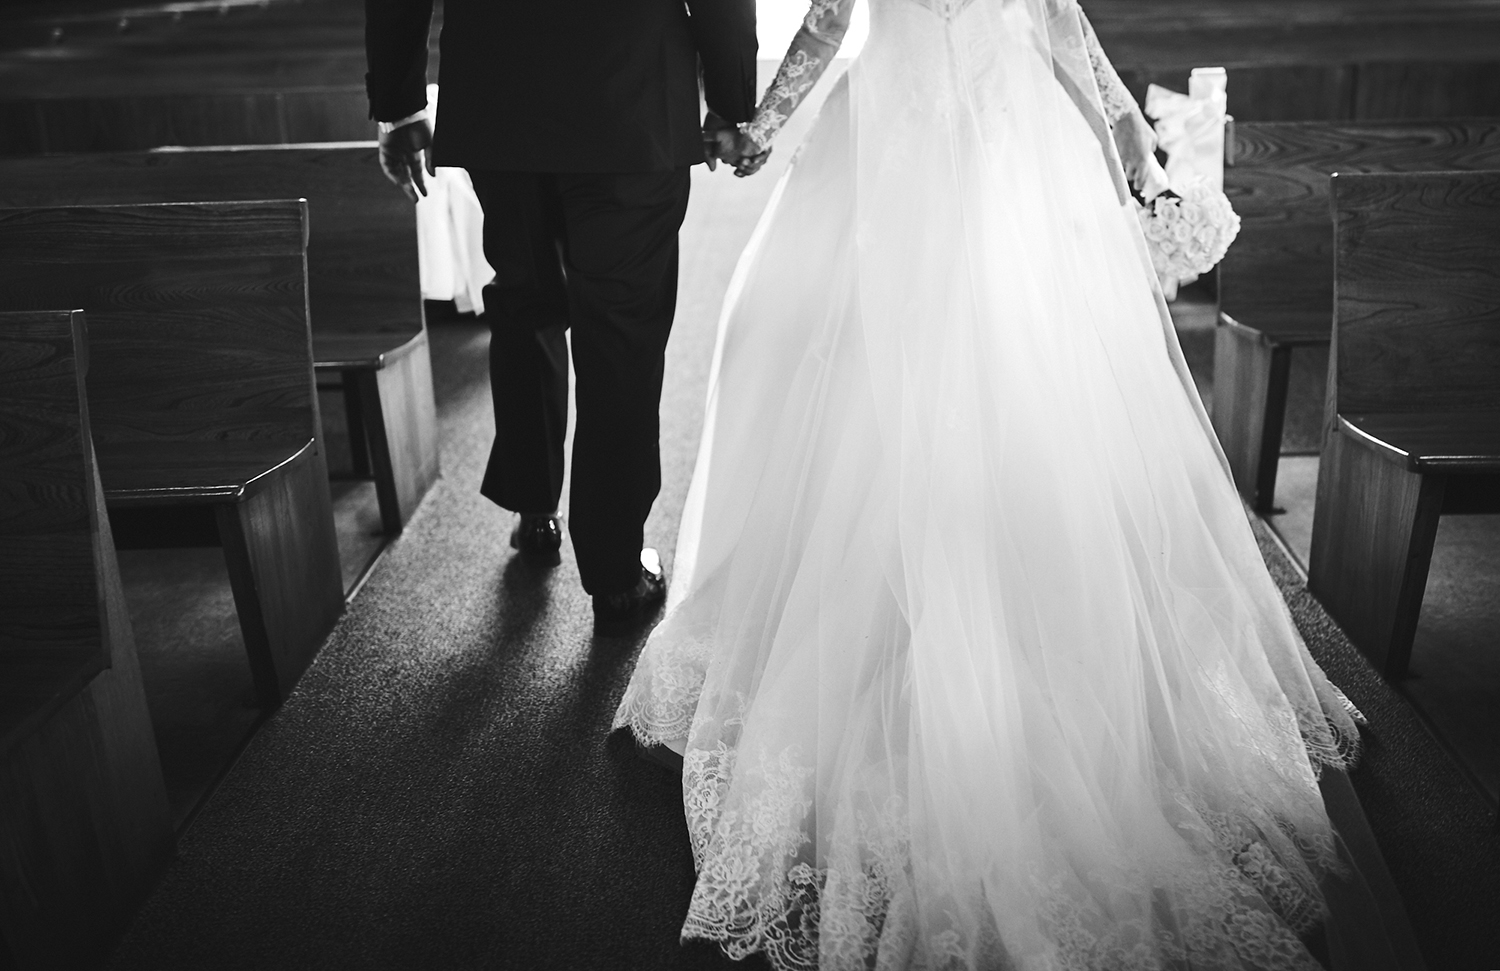 171111_CairnwoodEstateWeddingPhotography_PAWeddingPhotographer_By_BriJohnsonWeddings_0063.jpg